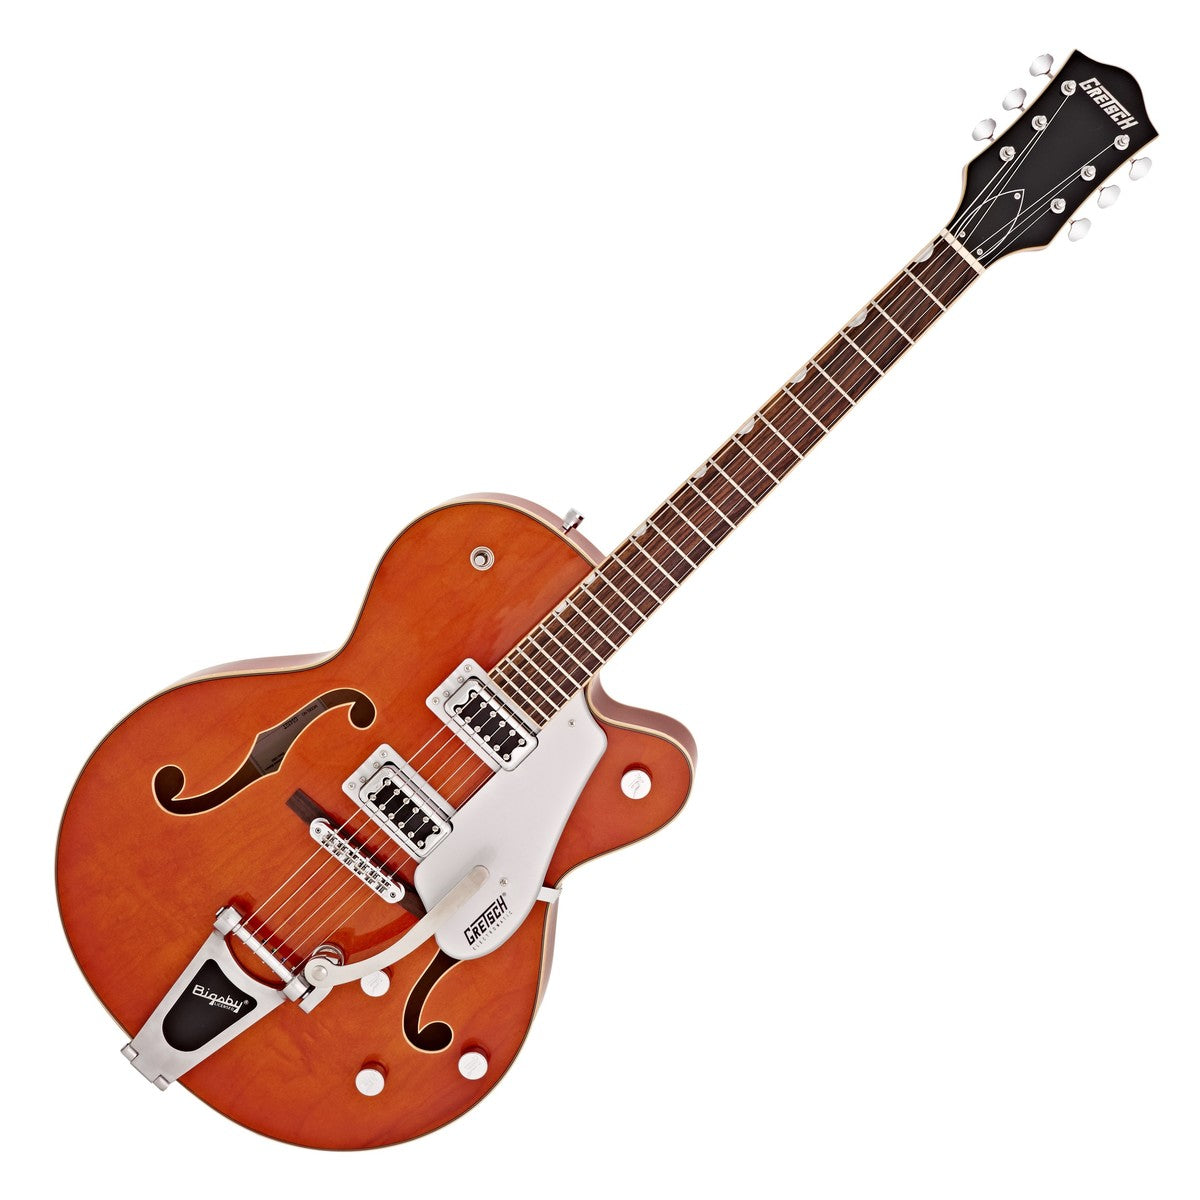 GRETSCH G5420T ELECTROMATIC Guitare Electrique Hollow Body ORANGE STAIN